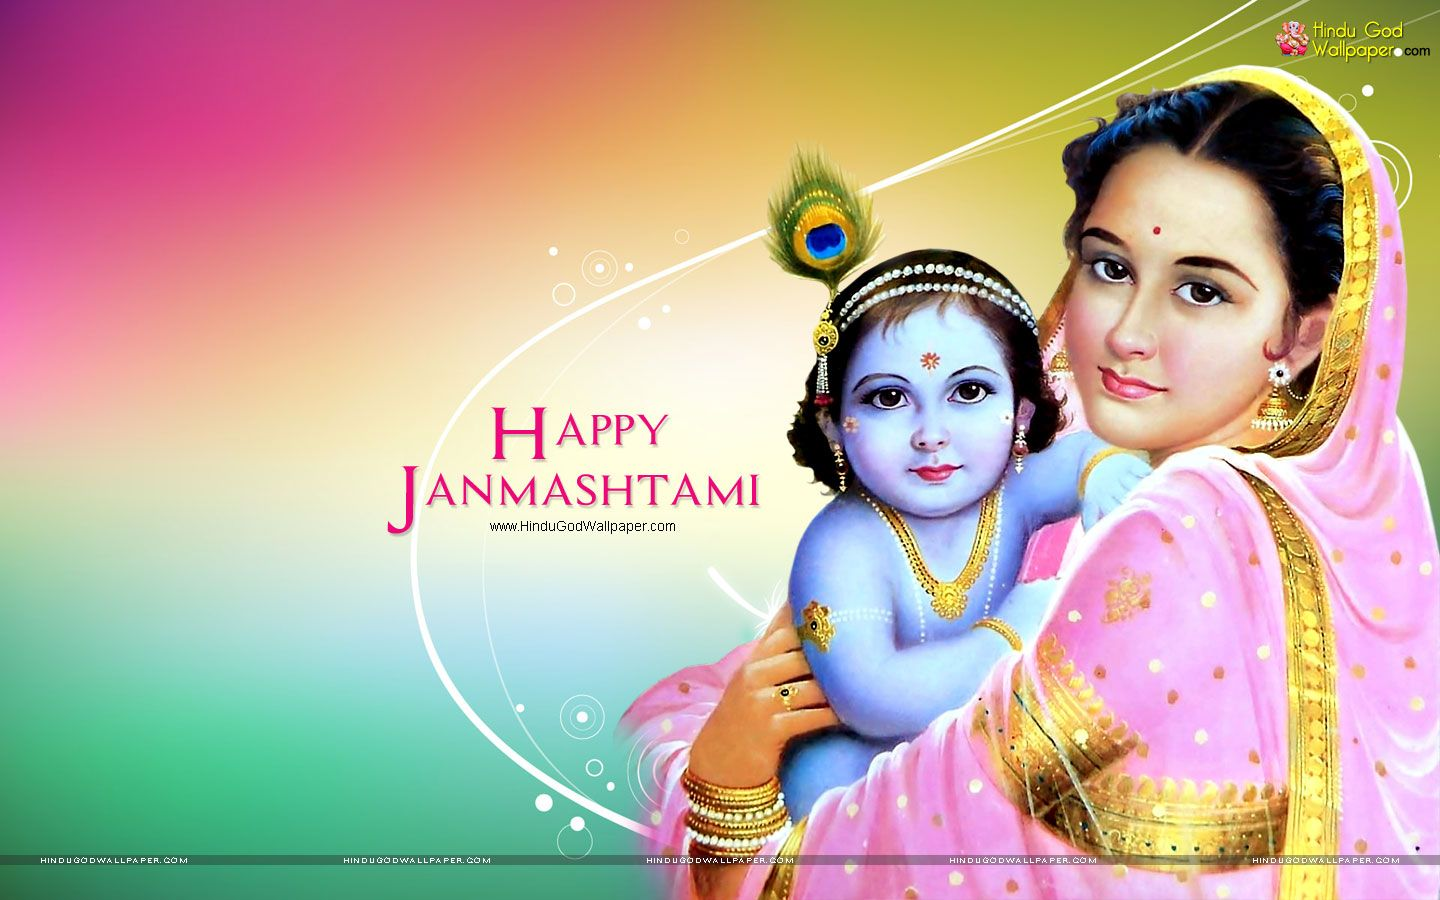 Free Krishna Janmashtami Wallpaper Galleries For Your Computer Desktop And Hd Happy Janmashtami W Janmashtami Wallpapers Janmashtami Images Krishna Janmashtami